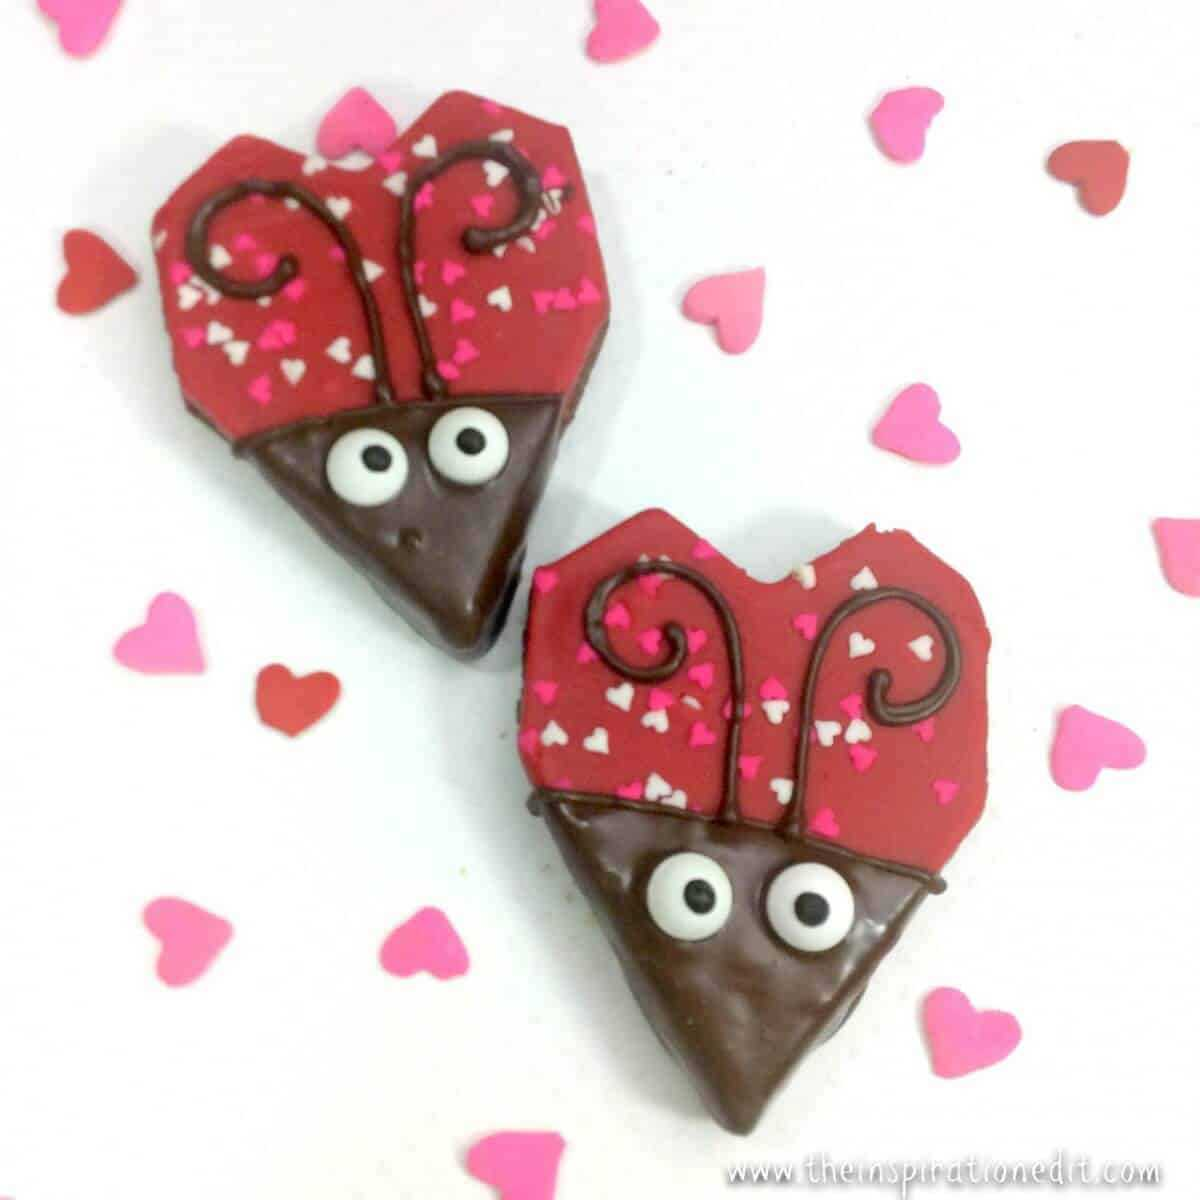 Love Bugs Fun Valentines Day Food Idea · The Inspiration Edit